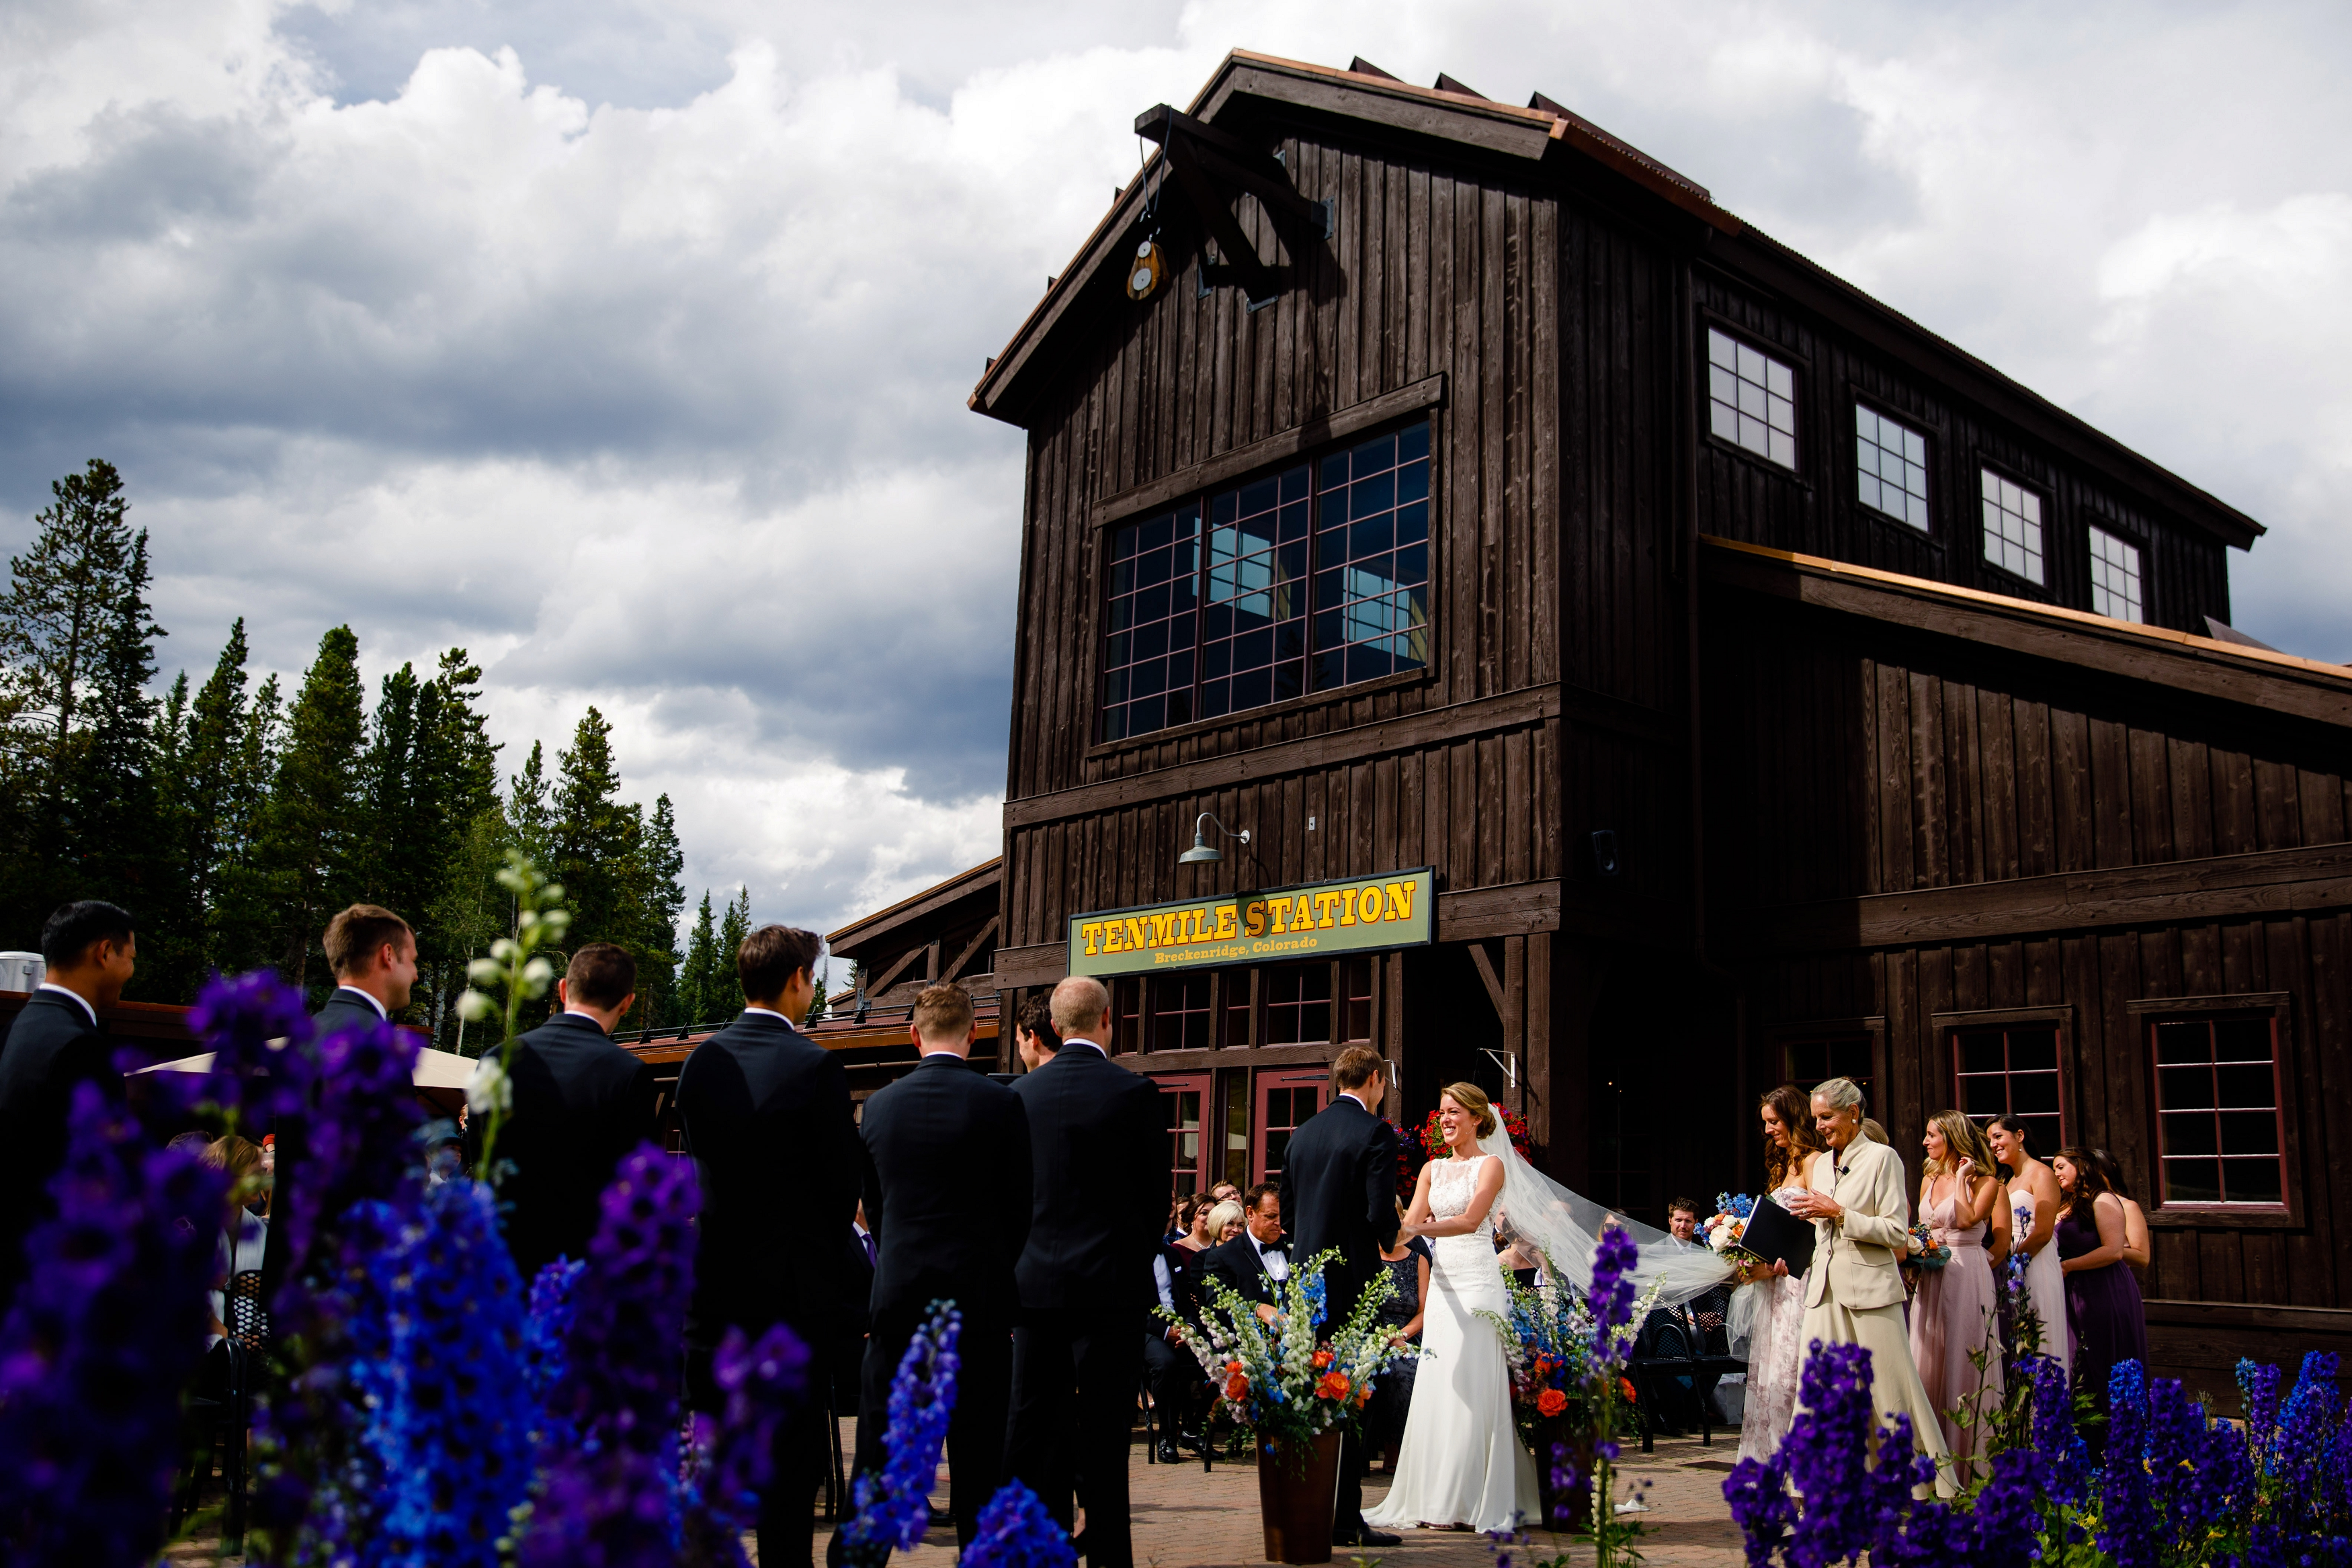 A Tenmile Station Breckenridge Wedding which took place in August of 2017